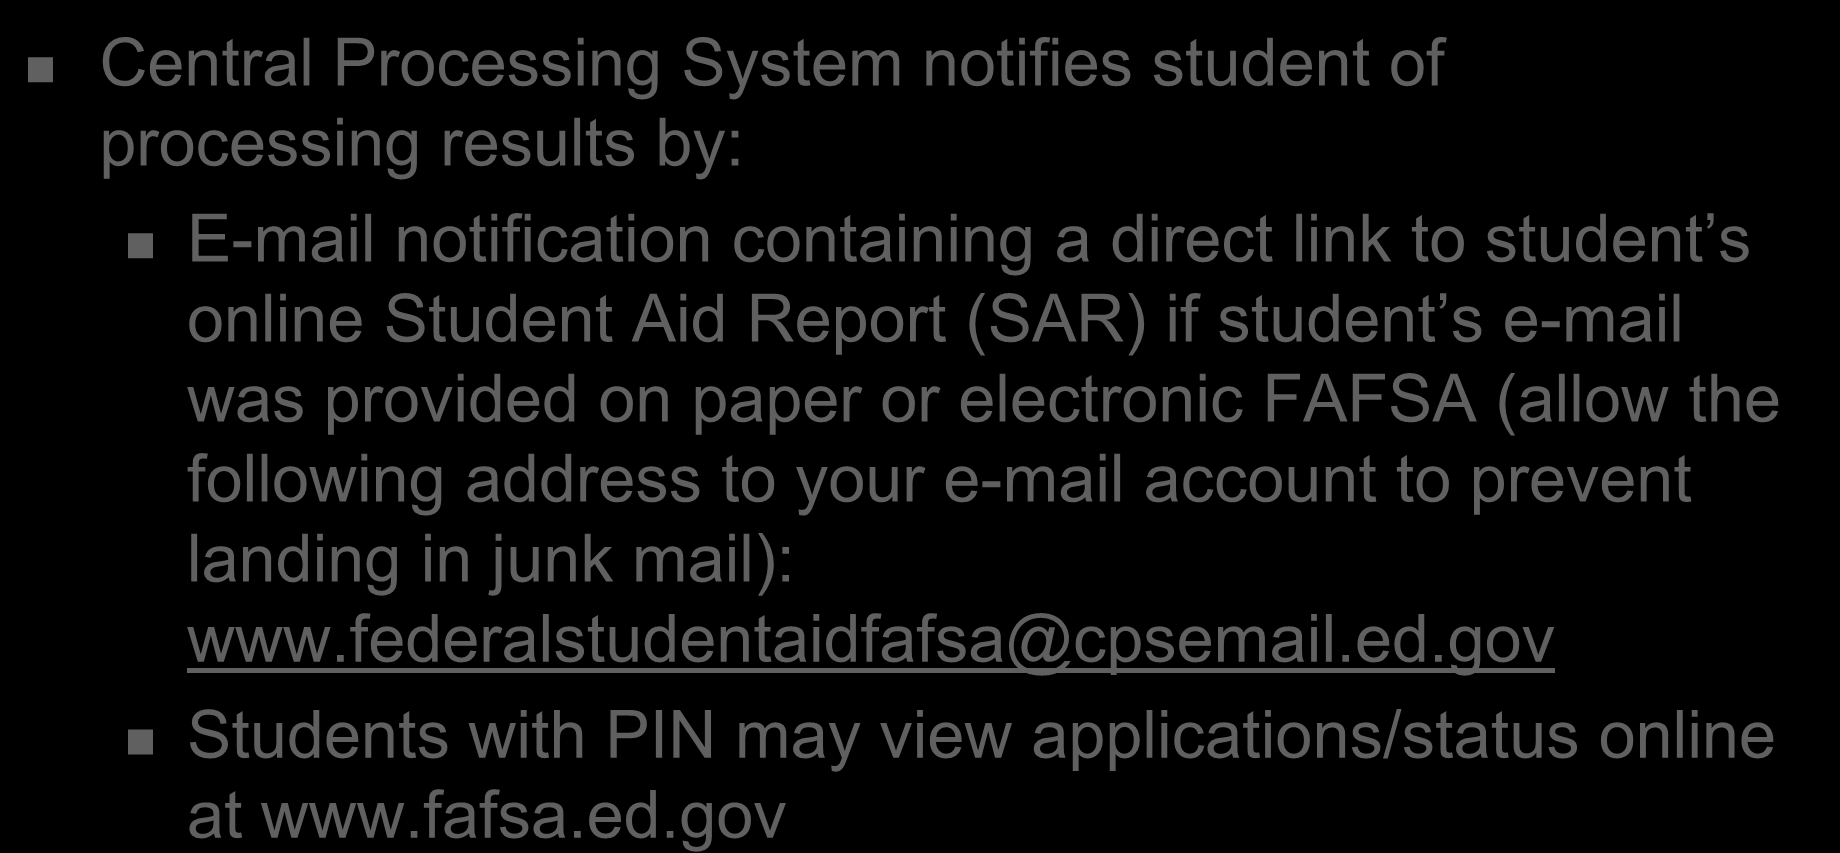 FAFSA Processing Results Central Processing System notifies student of processing results by: E-mail notification containing a direct link to student s online Student Aid Report (SAR) if student s